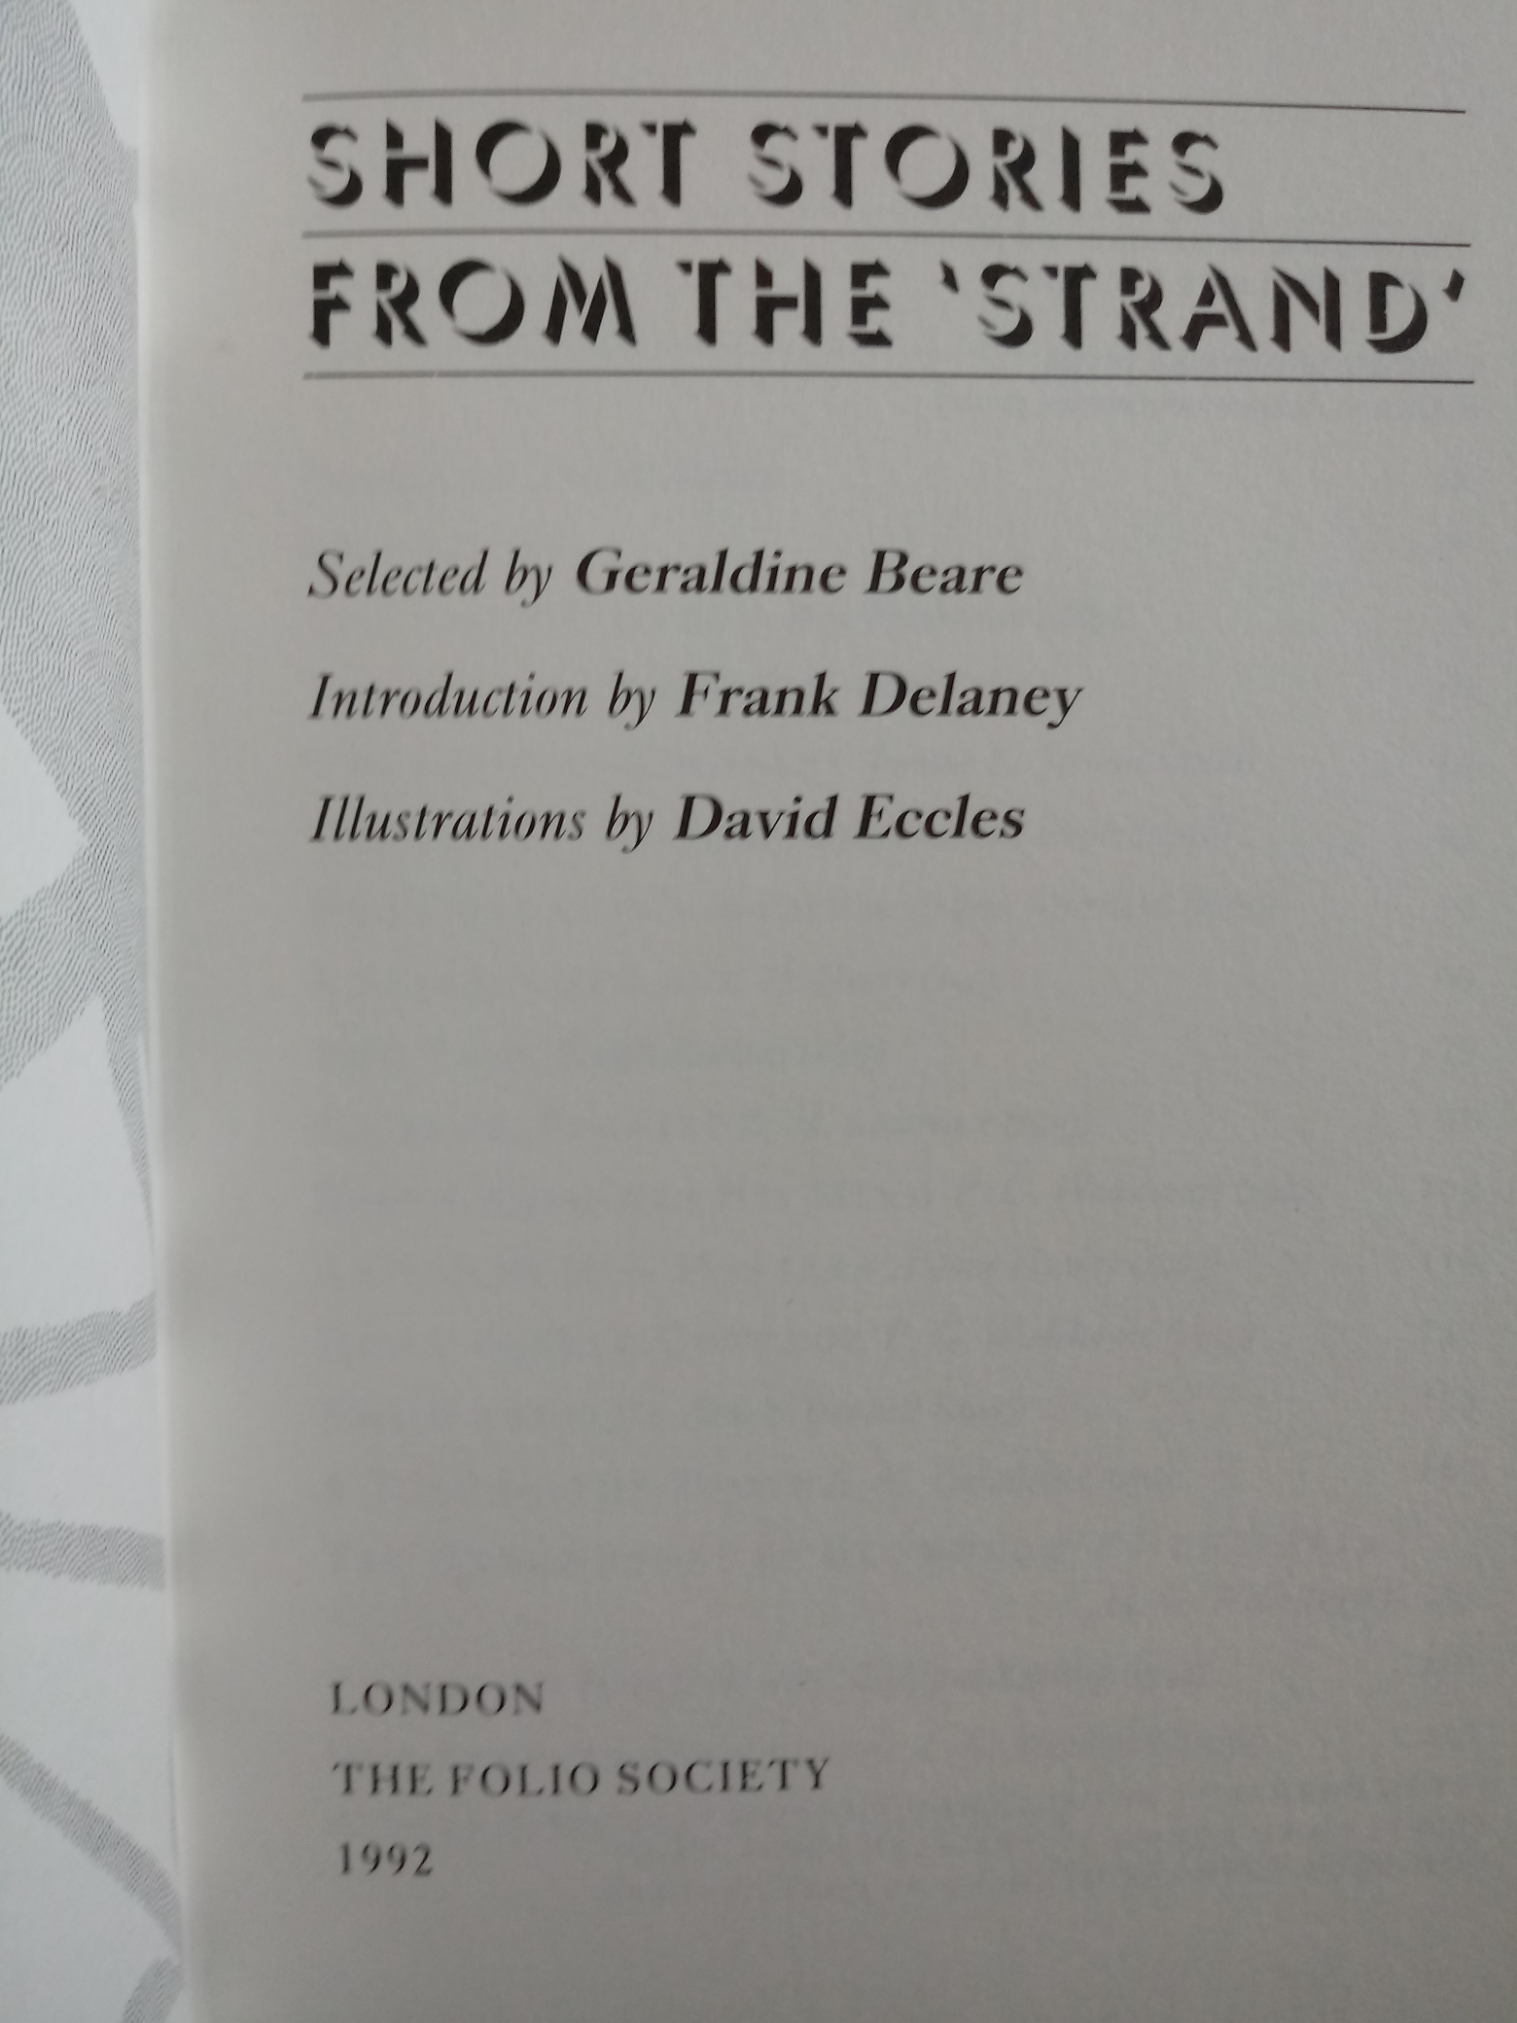 2 x hardback books selected by Geraldine Beare, Short Stories From The Strand 318 pages Published - Image 4 of 7